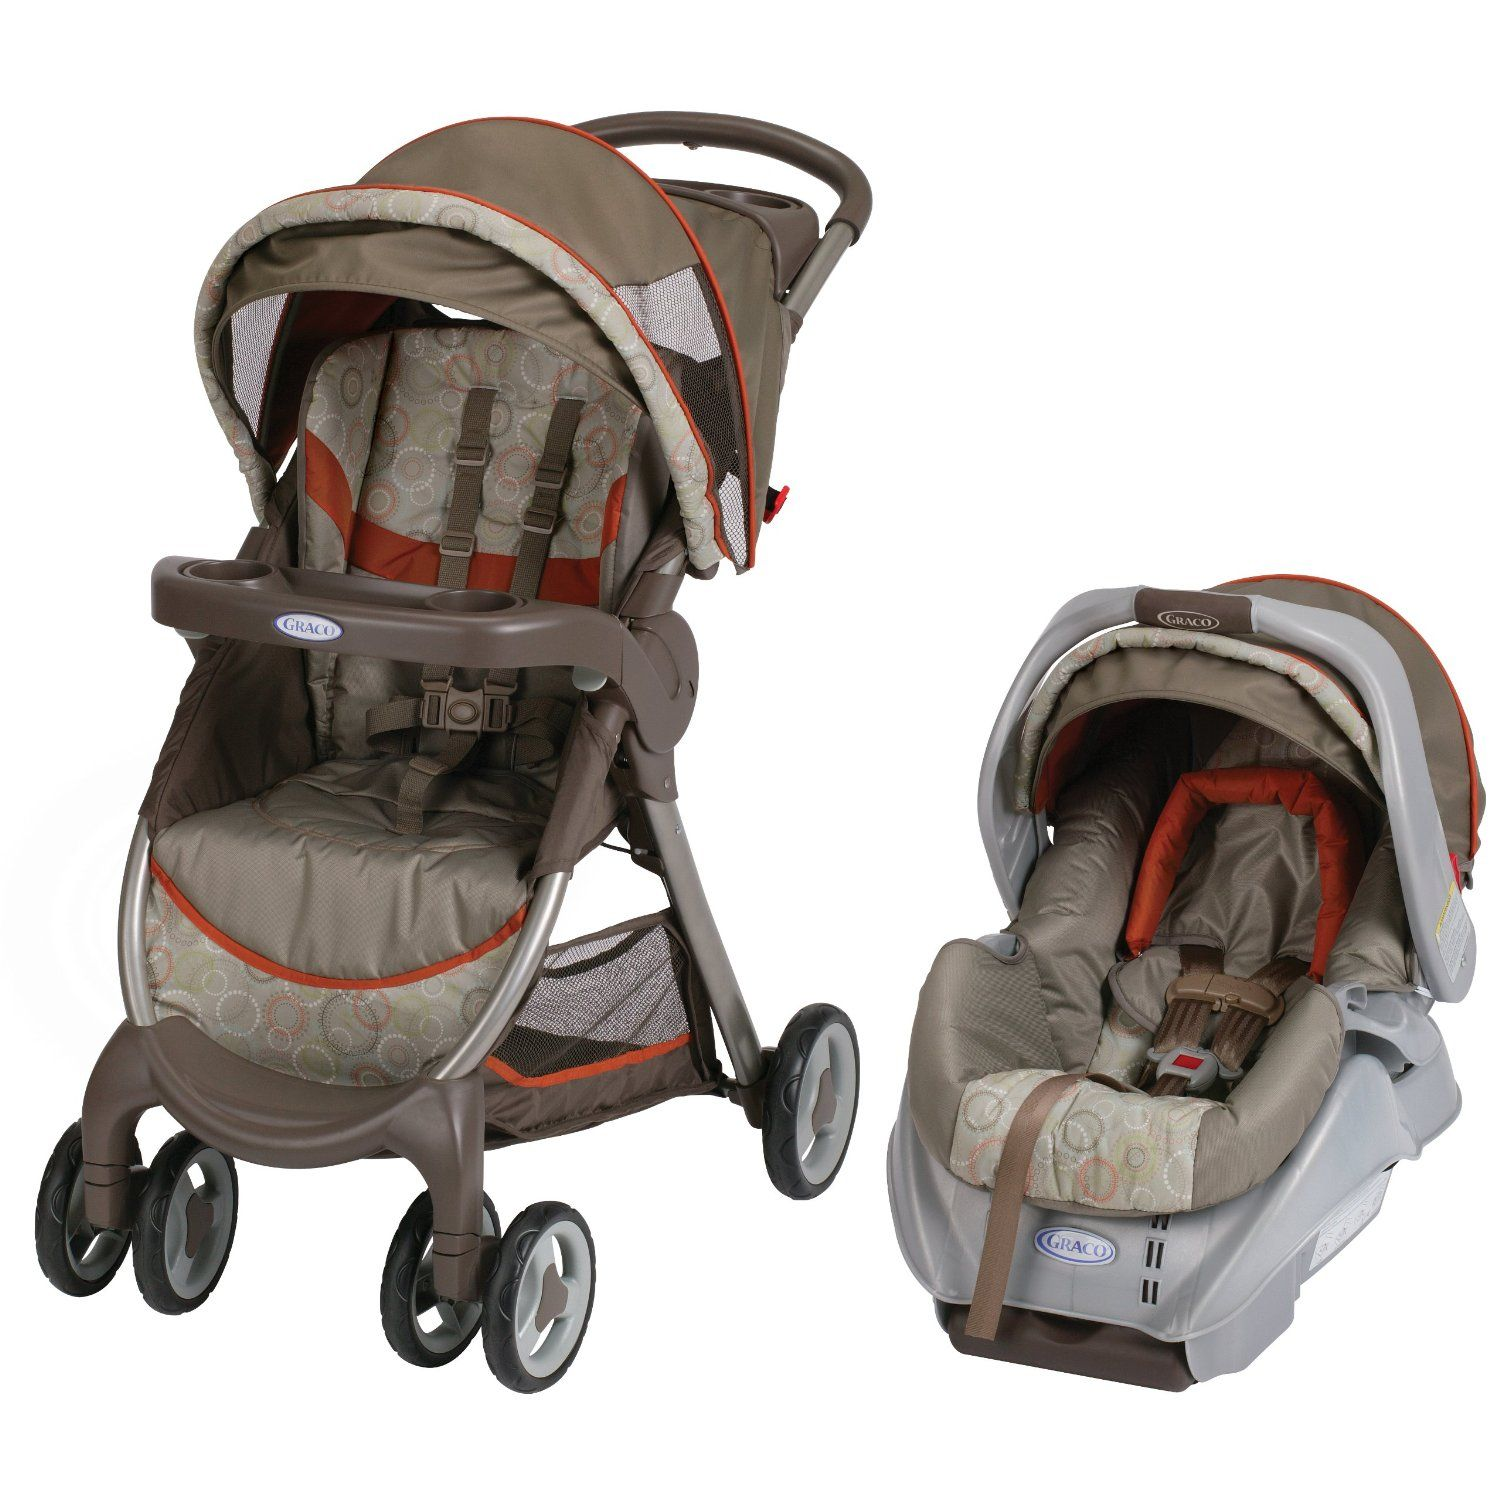 Pin on Baby Stroller Travel Systems